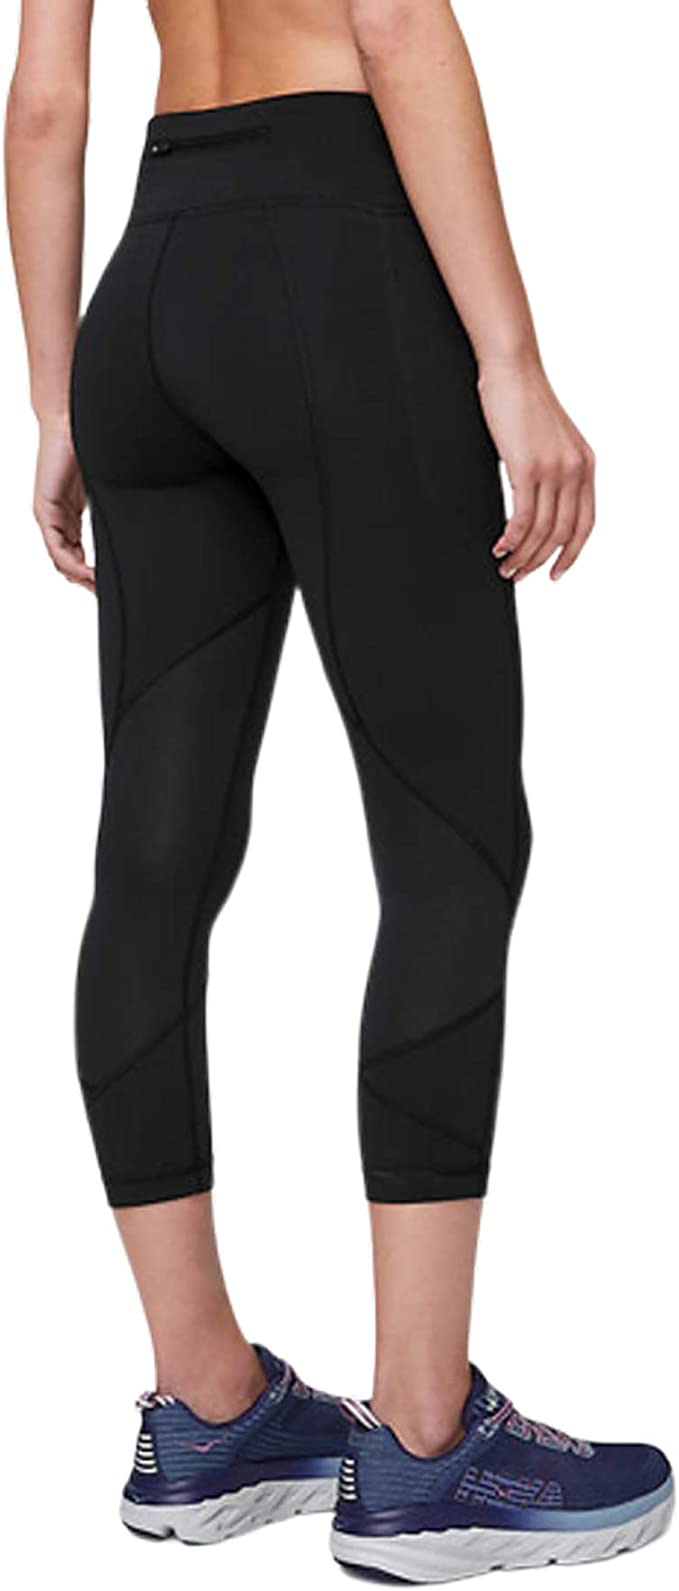 Amazon Com Lululemon Pace Rival Crop 22 Comfort And Convenient Design Strategic Pocket Position Gives You Plenty Of Storage Options Clothing